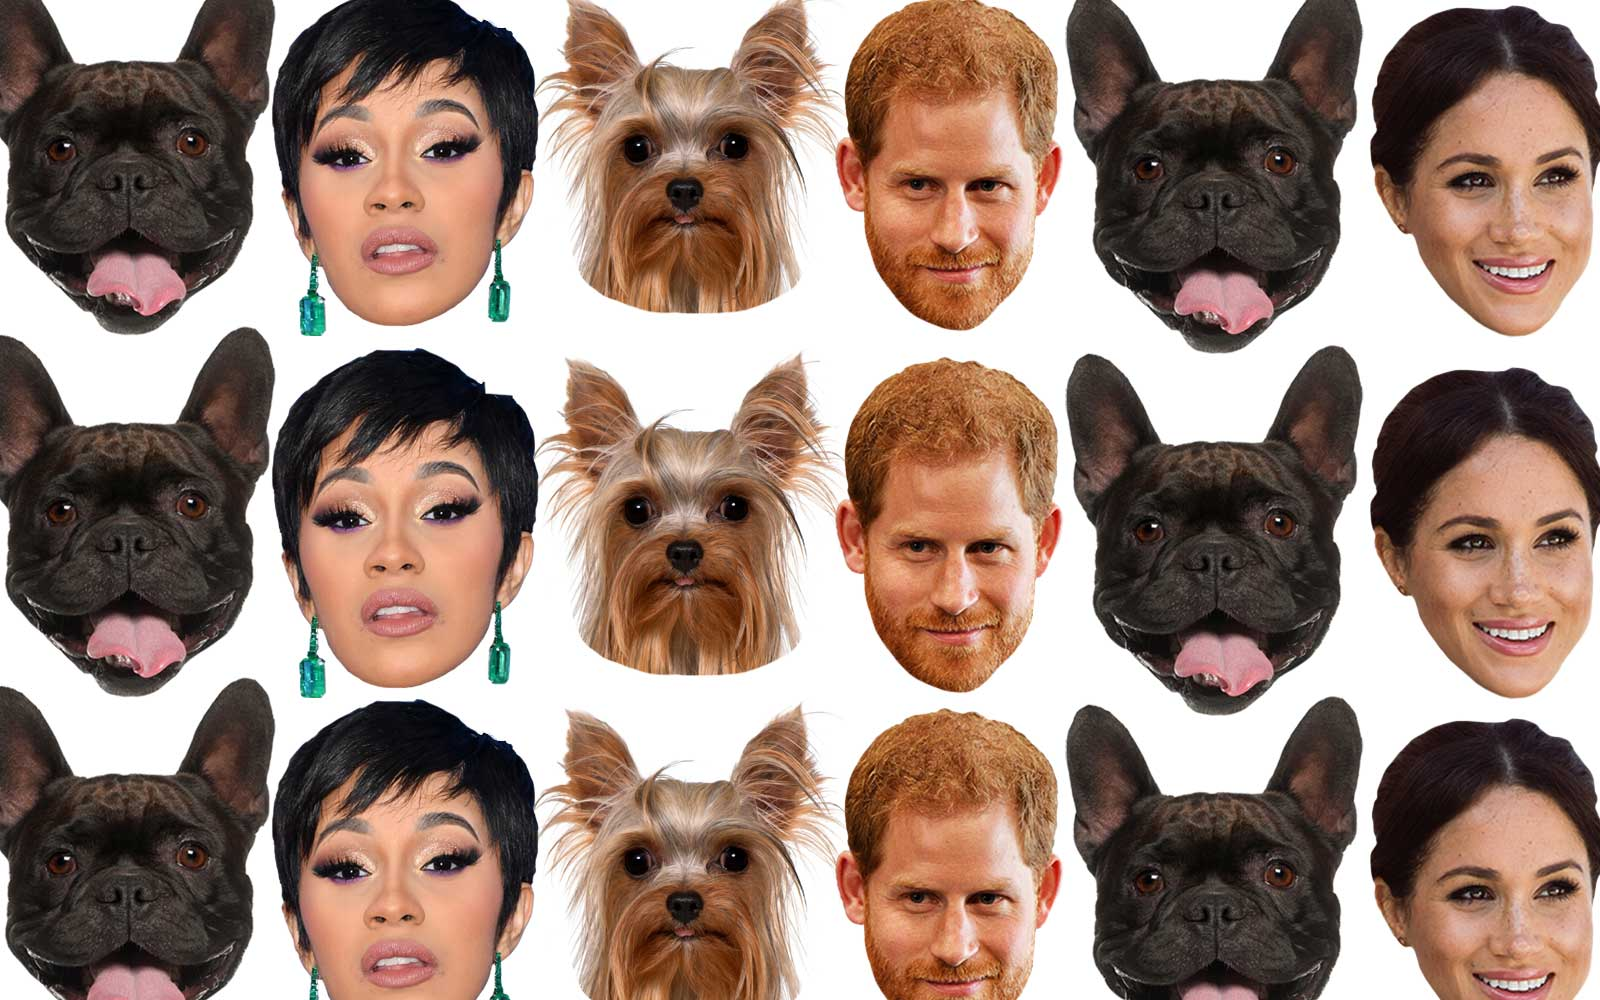 The Top Pets Names of 2018: People Are Naming Their Pets After Meghan and Harry, Cardi B, and Childish Gambino